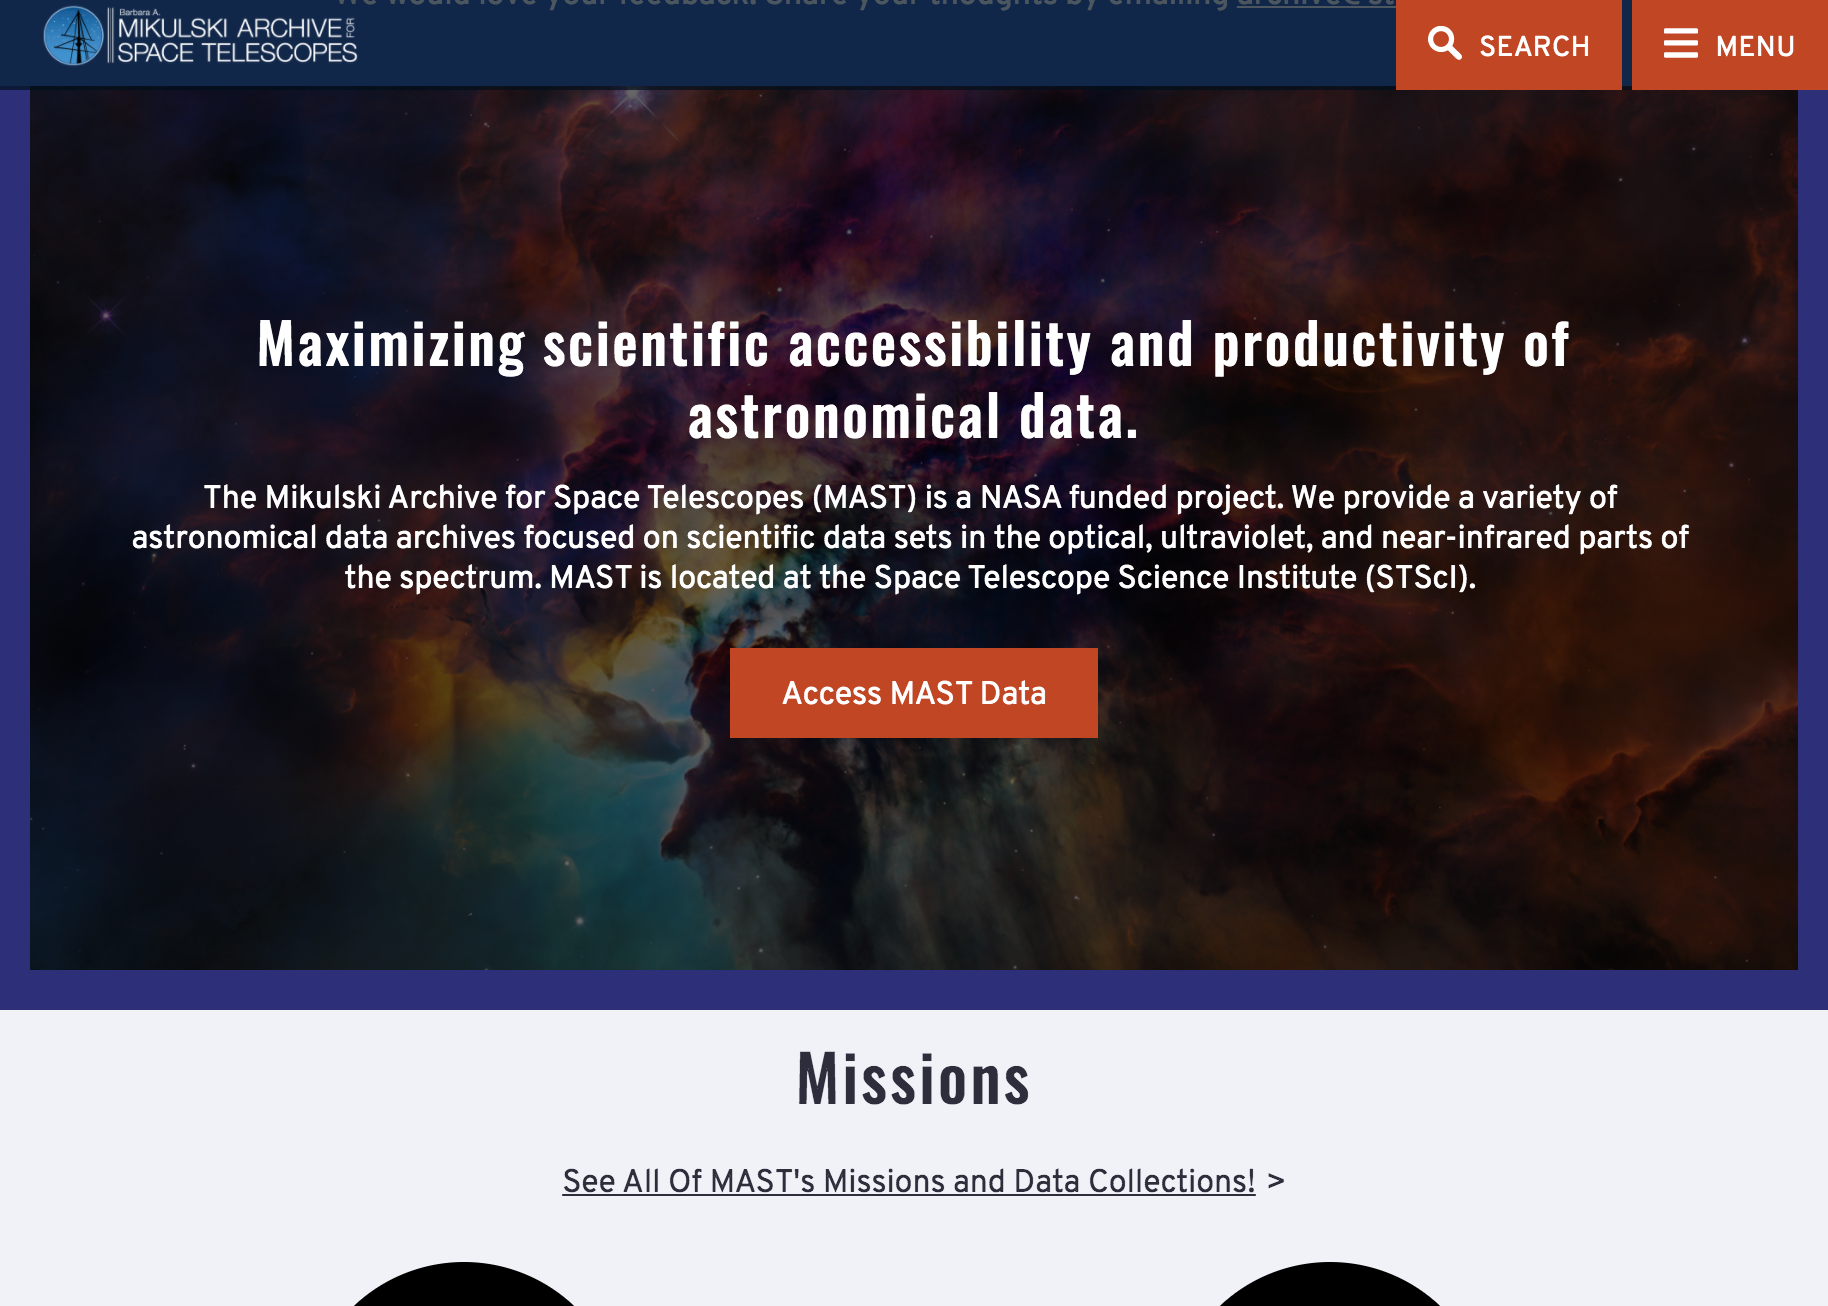 new MAST: Barbara A. Mikulski Archive for Space Telescopes